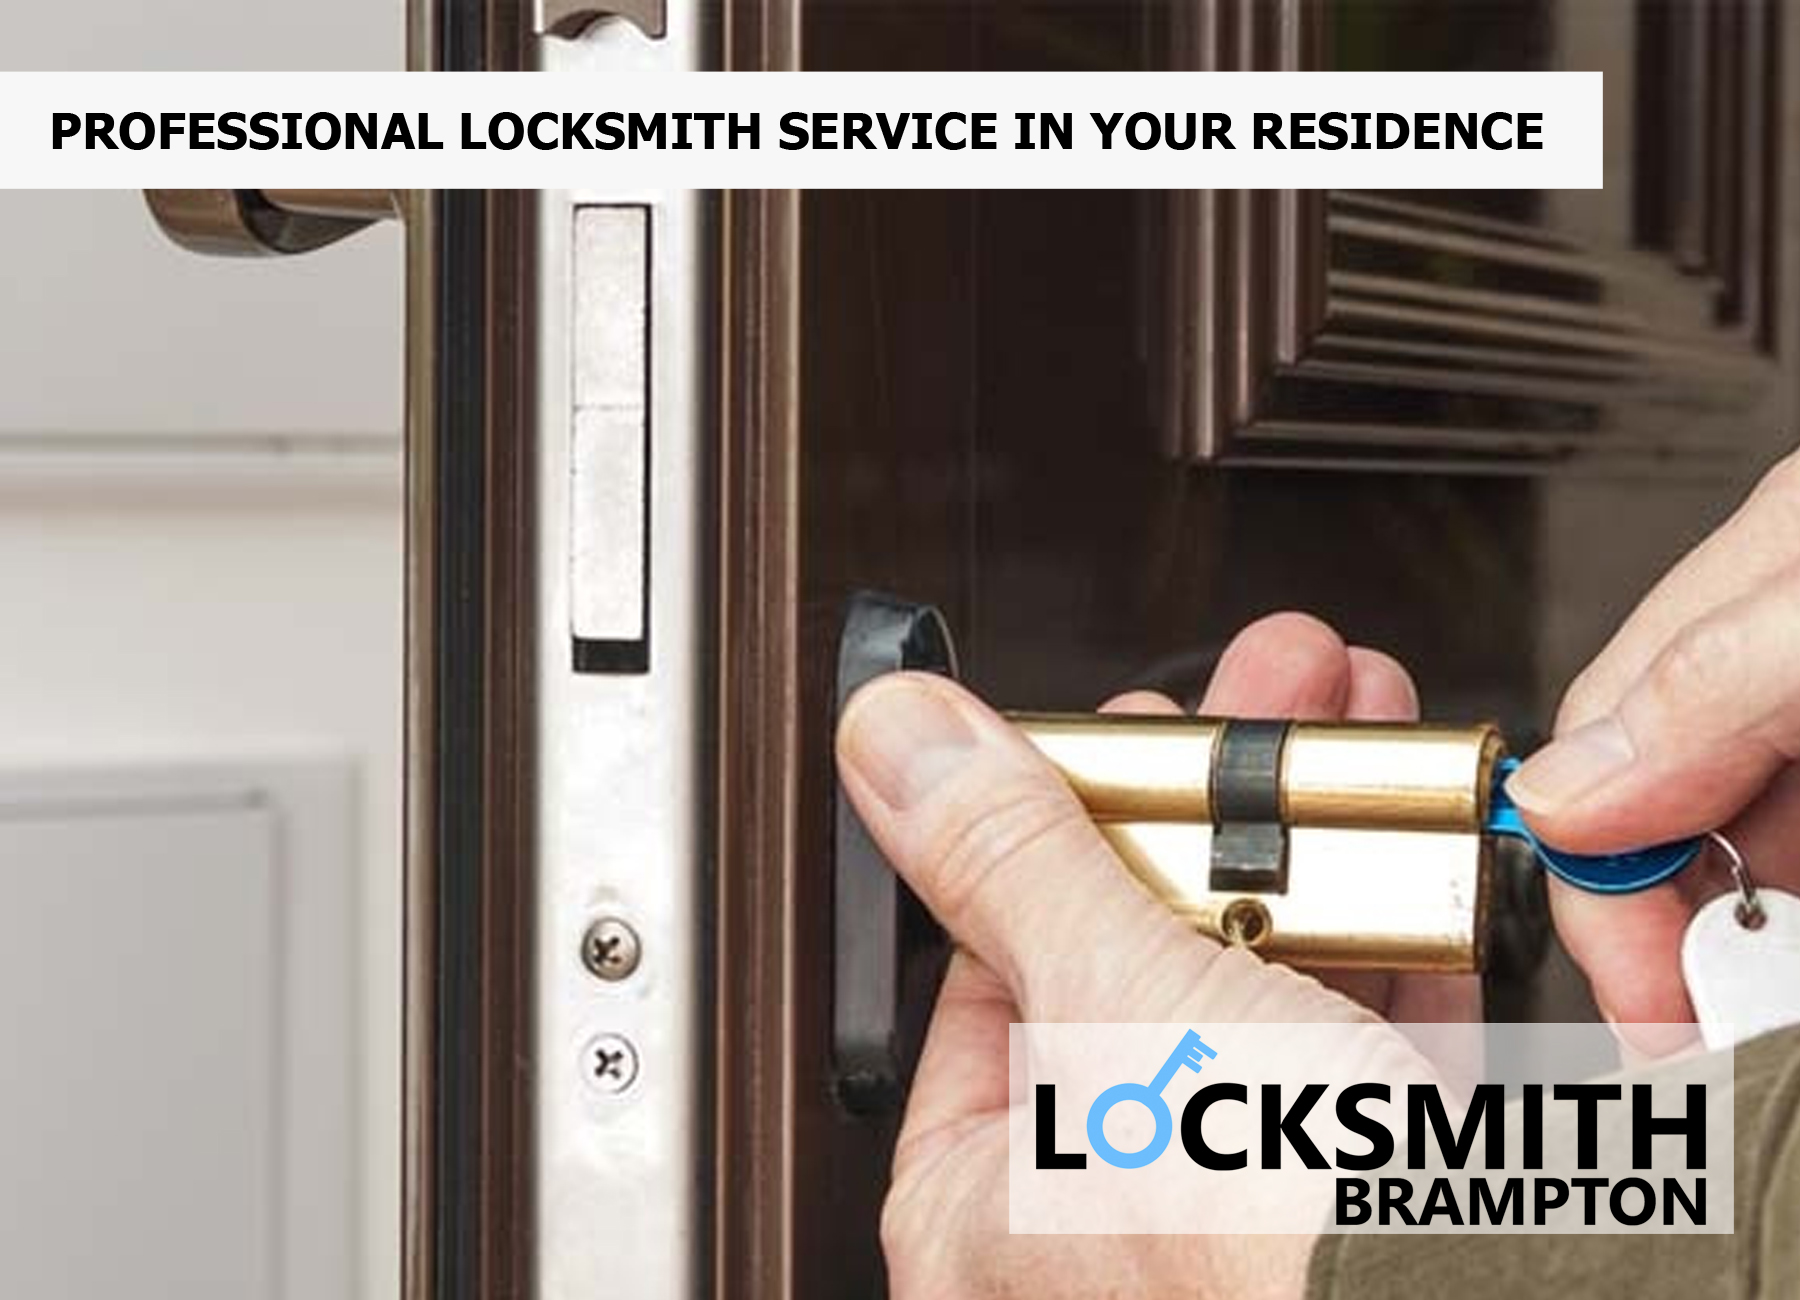 PROFESSIONAL LOCKSMITH SERVICE IN YOUR RESIDENCE